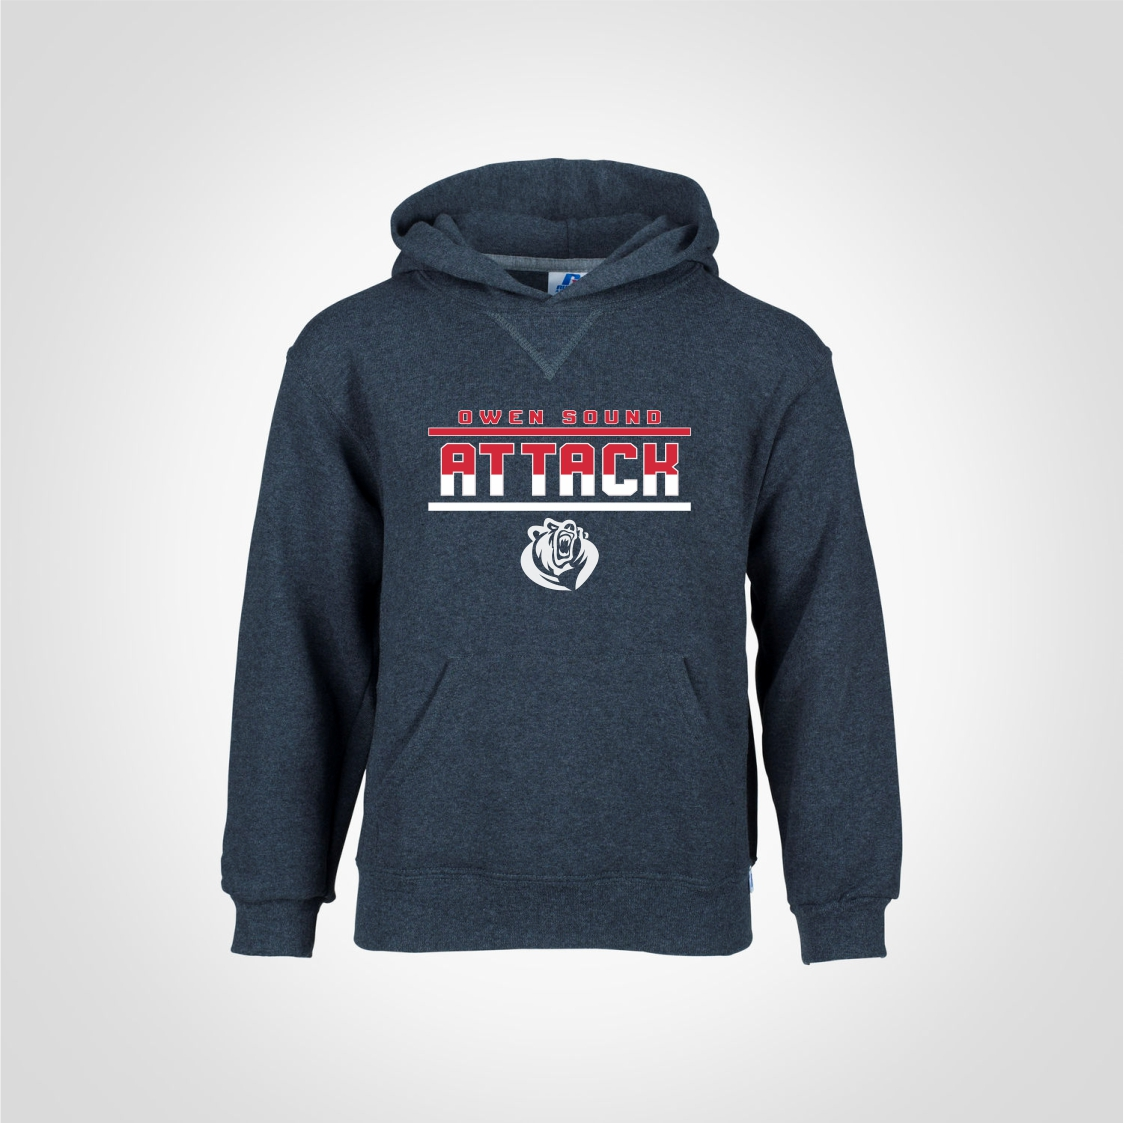 3a8b8bf091 995HBB1 Russell Athletic YOUTH 50/50 Fleece Pullover Hoodie